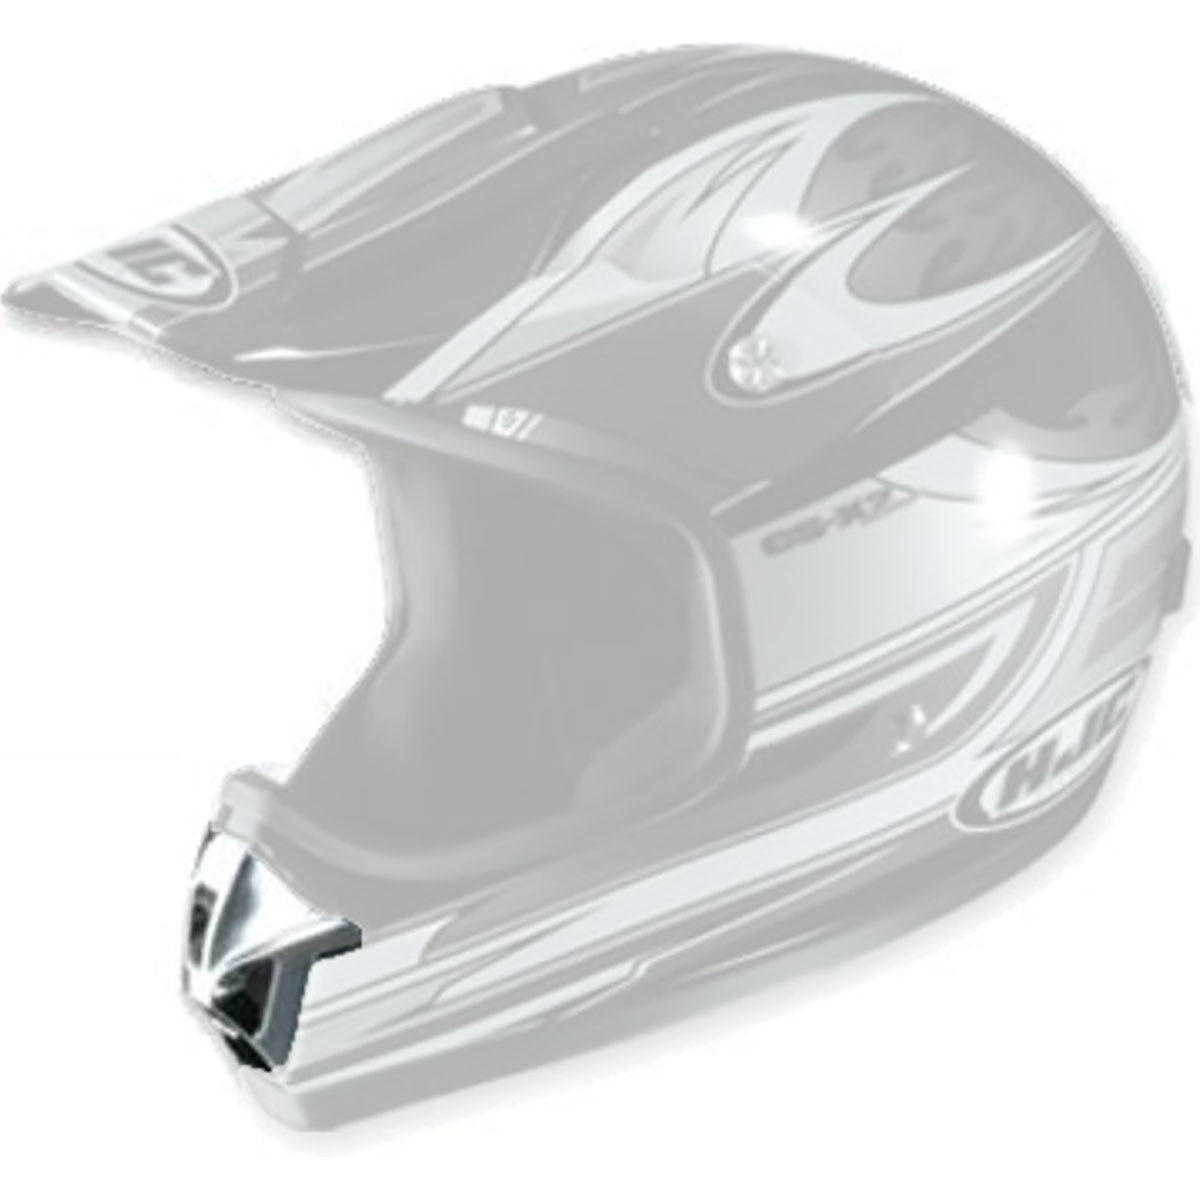 HJC CL-X2 Mouth Vent Helmet Accessories-10-959-1